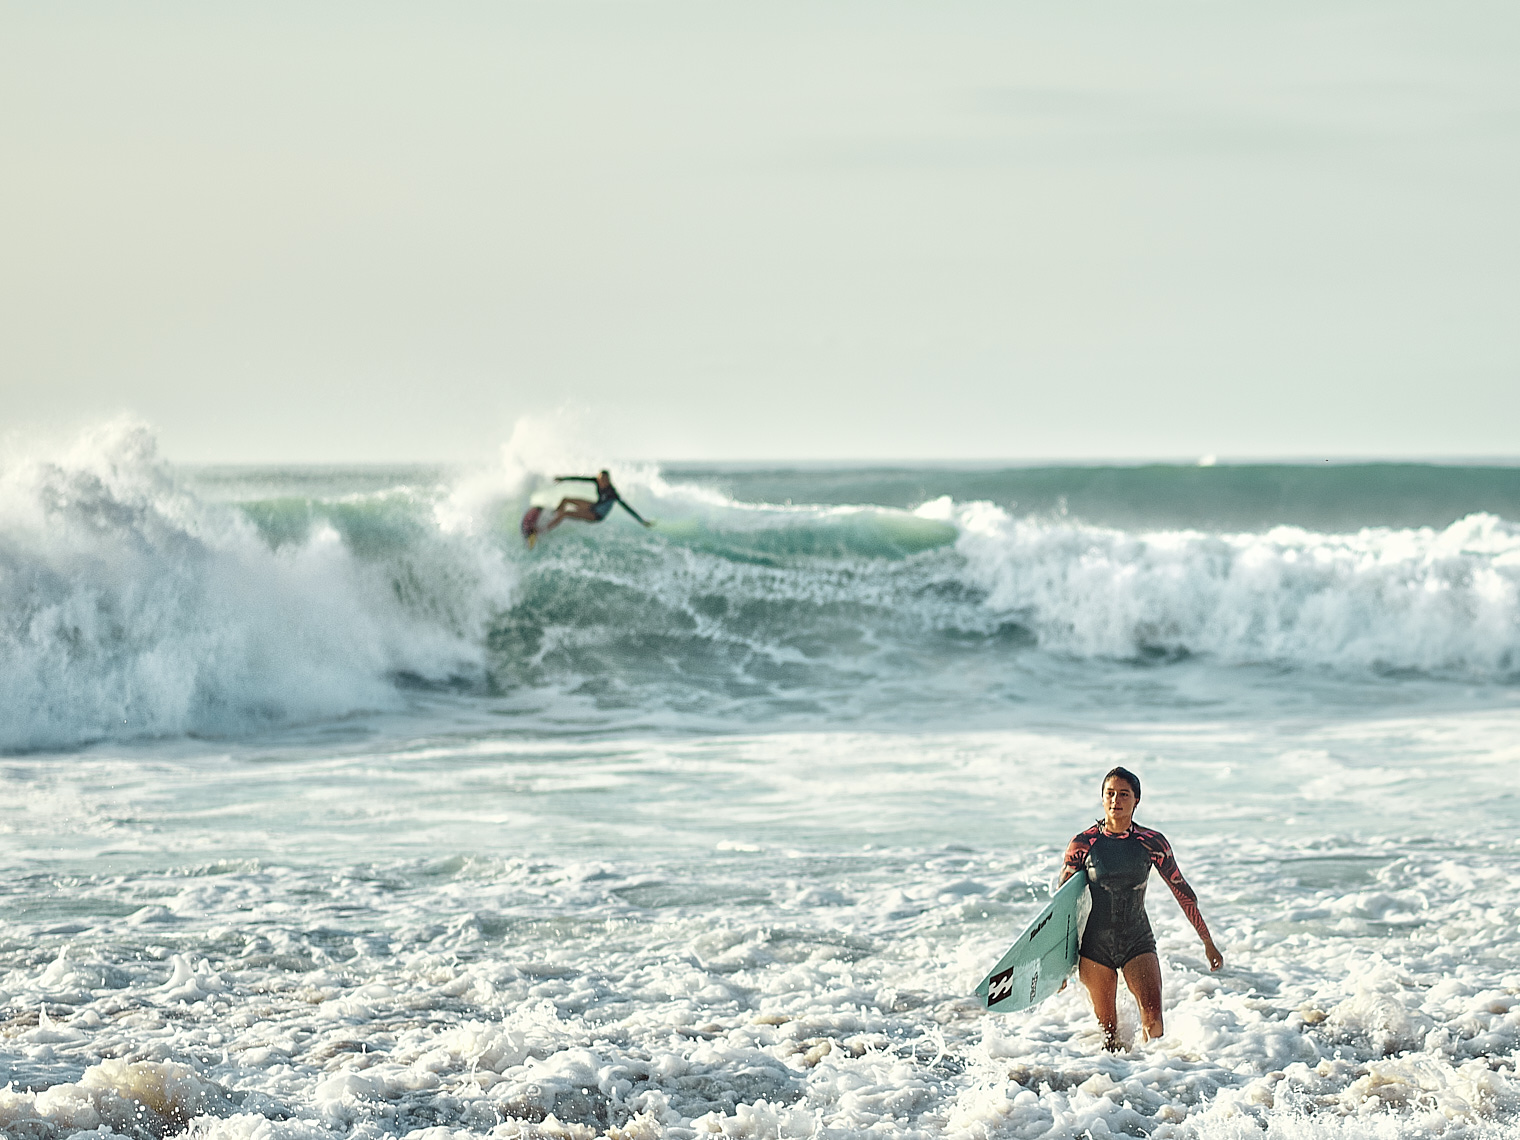 A young woman surfer emerges from the big waves